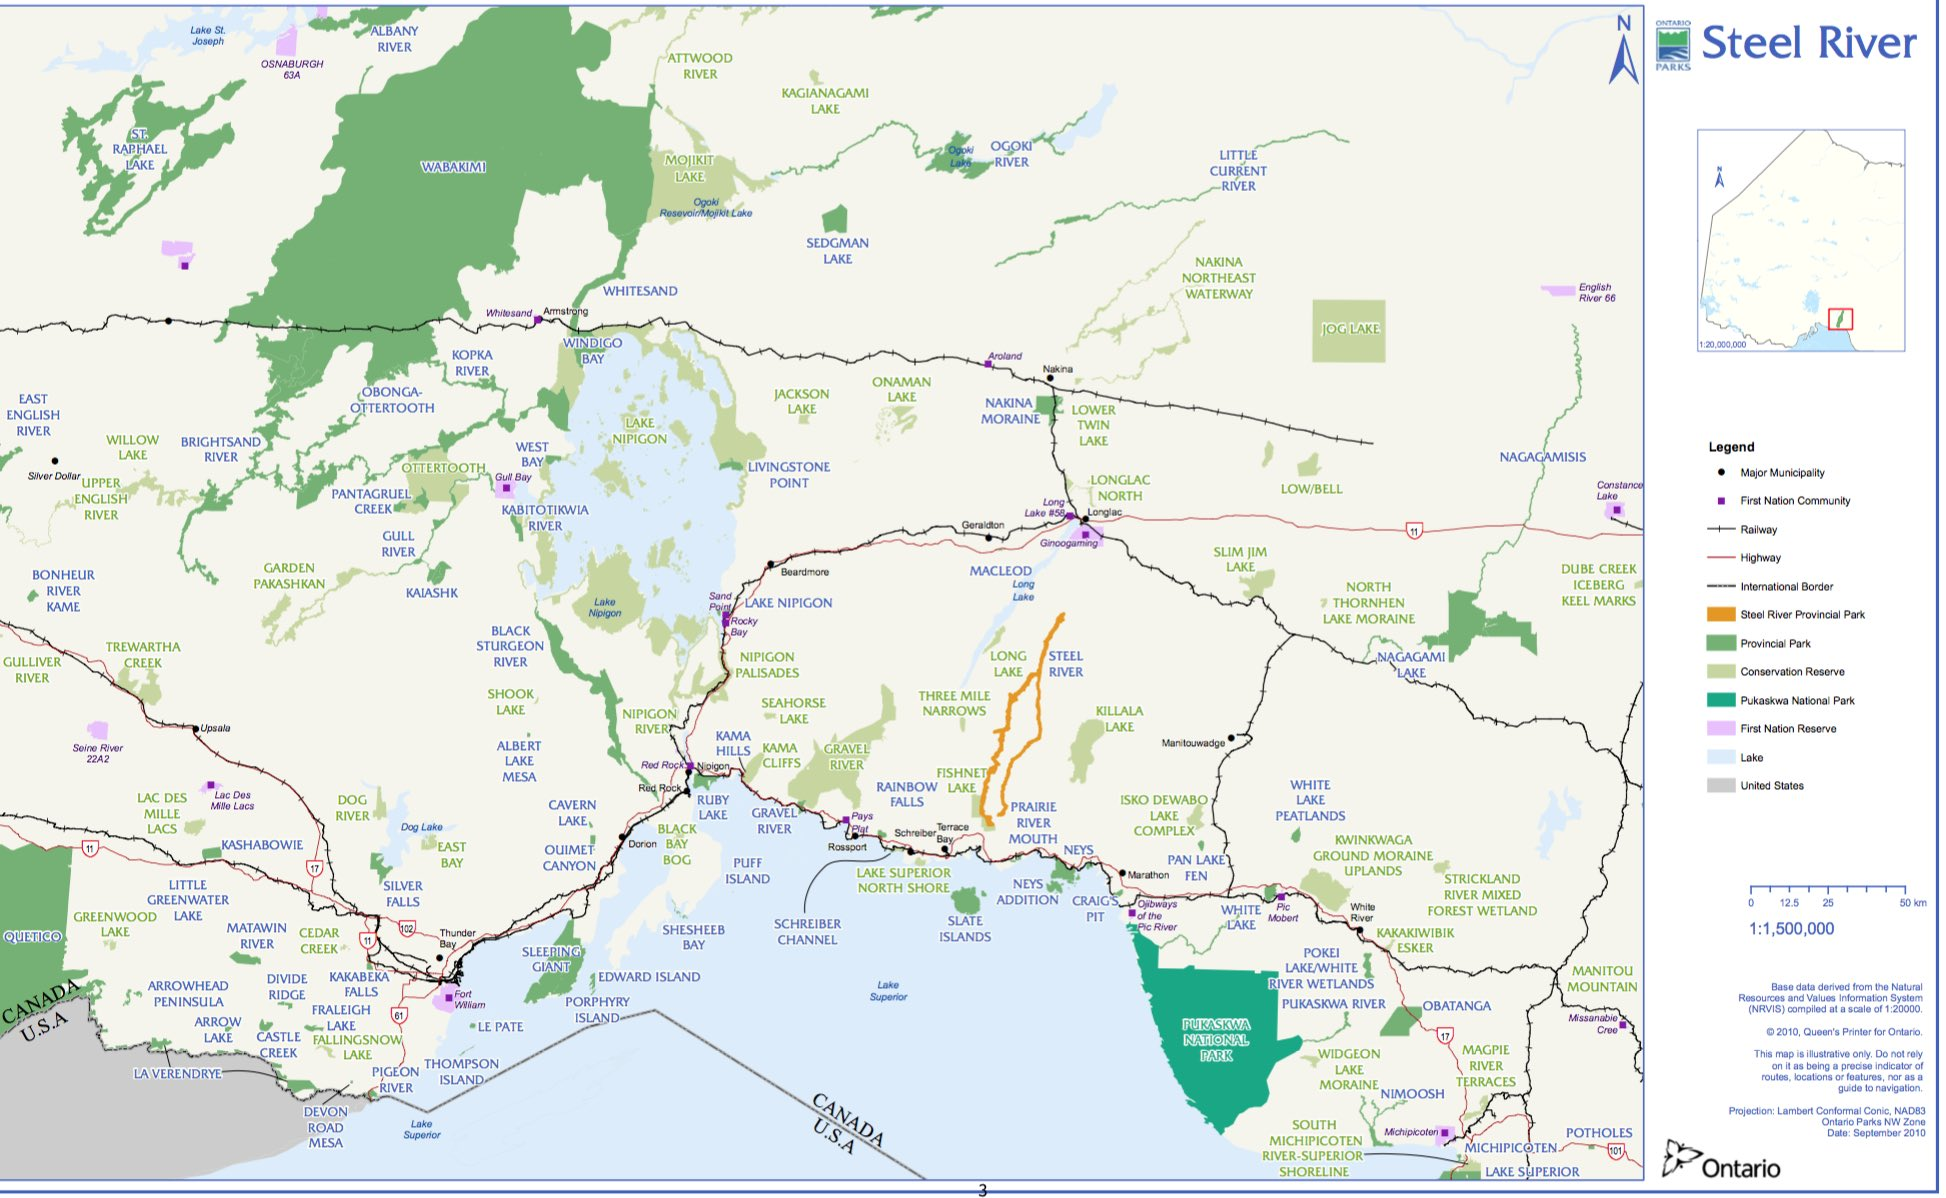 Provincial Parks Ontario Map Canoeing Ontario's Steel River System: Introduction, Maps